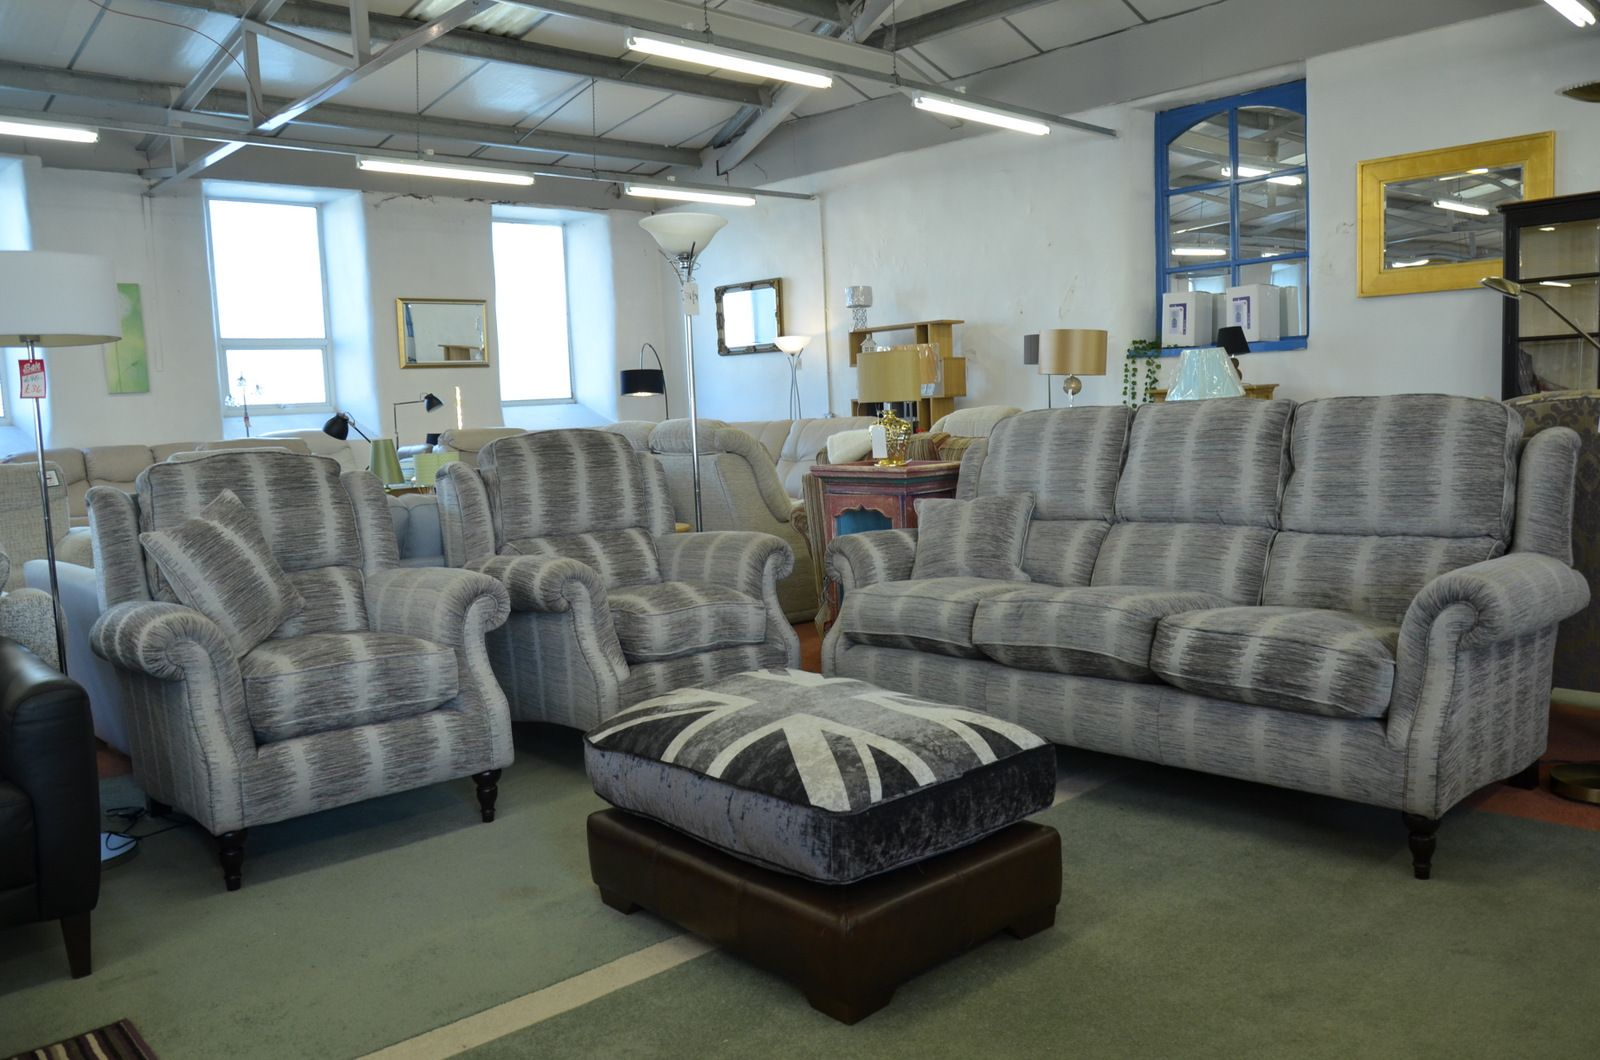 Admirable Henley 3 Seater Sofa 2 Armchairs In Grey Fabric Machost Co Dining Chair Design Ideas Machostcouk